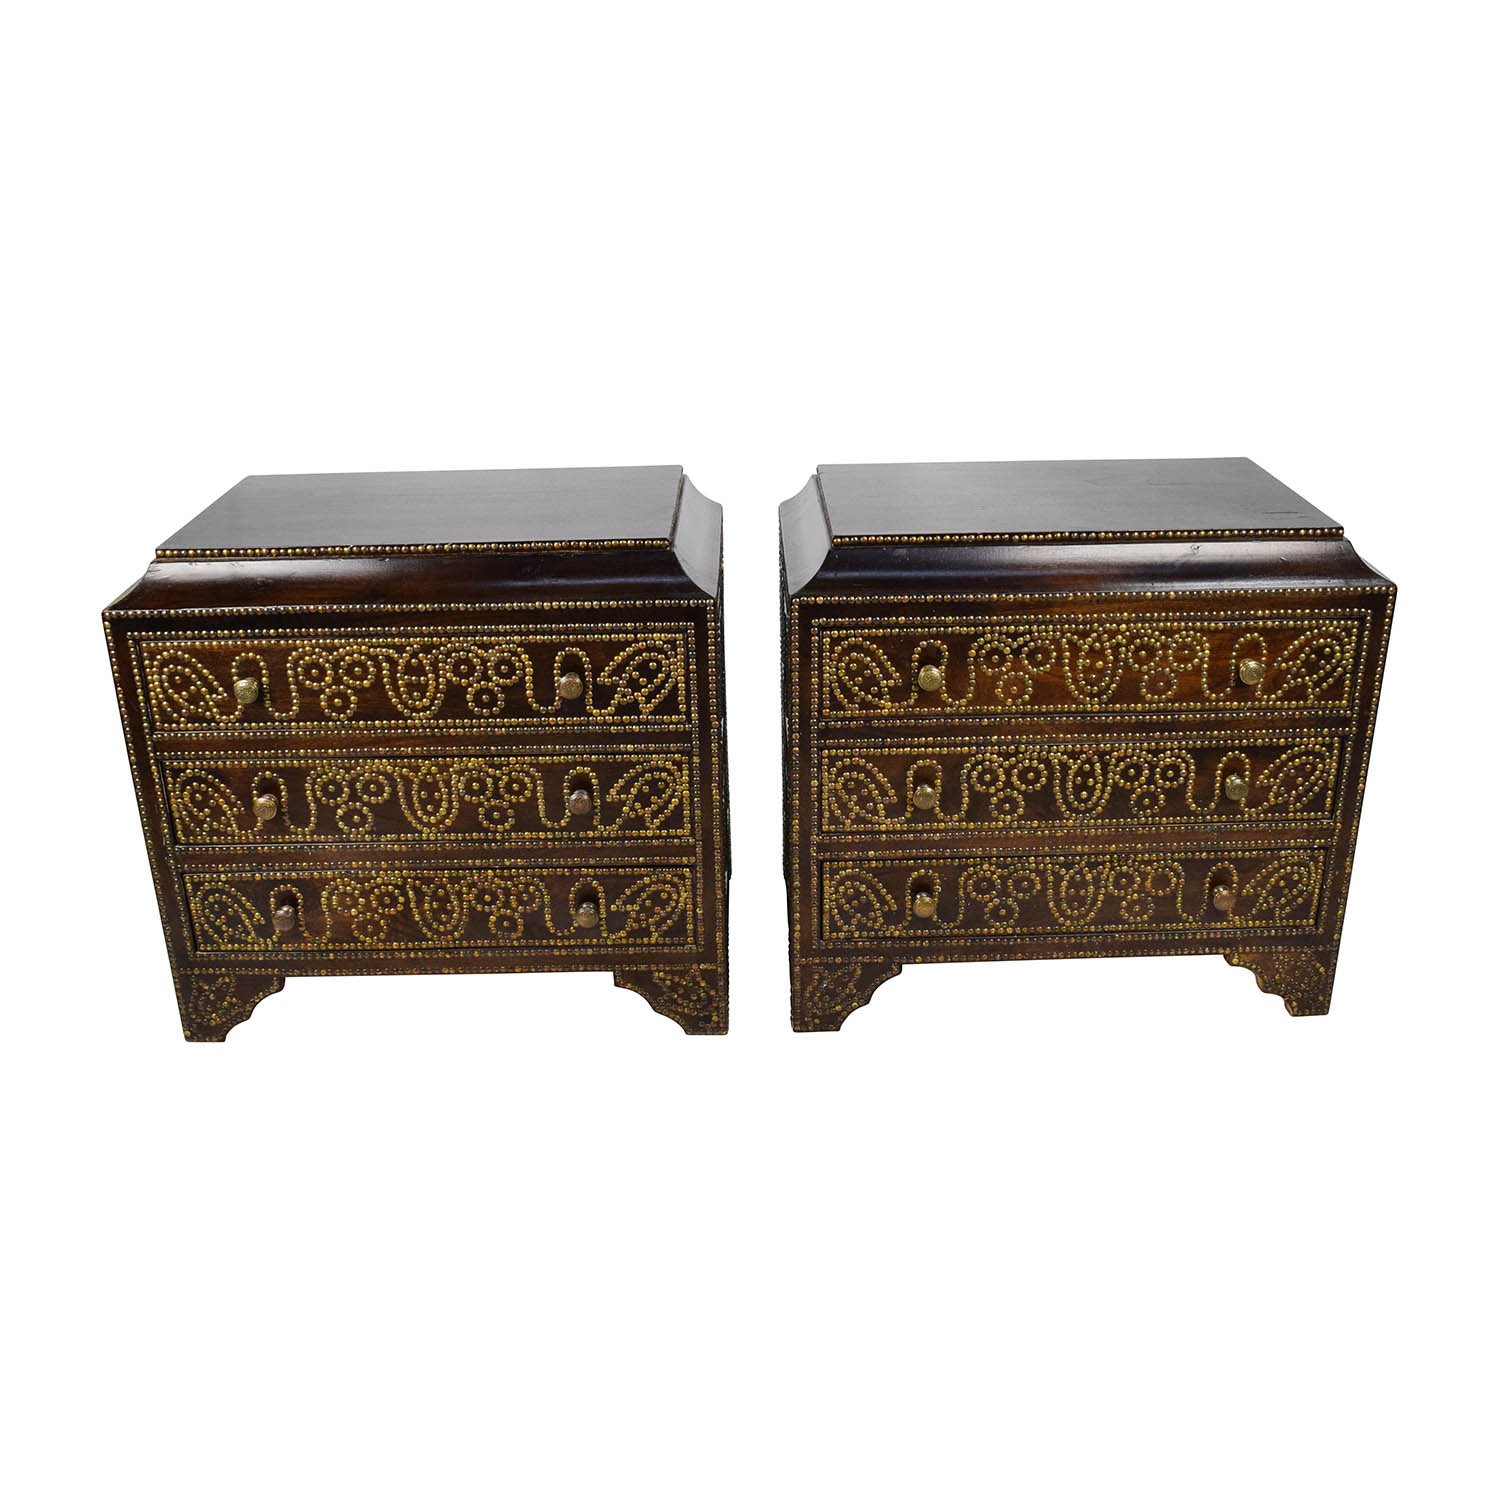 Horchow Coco Studded Chests Horchow